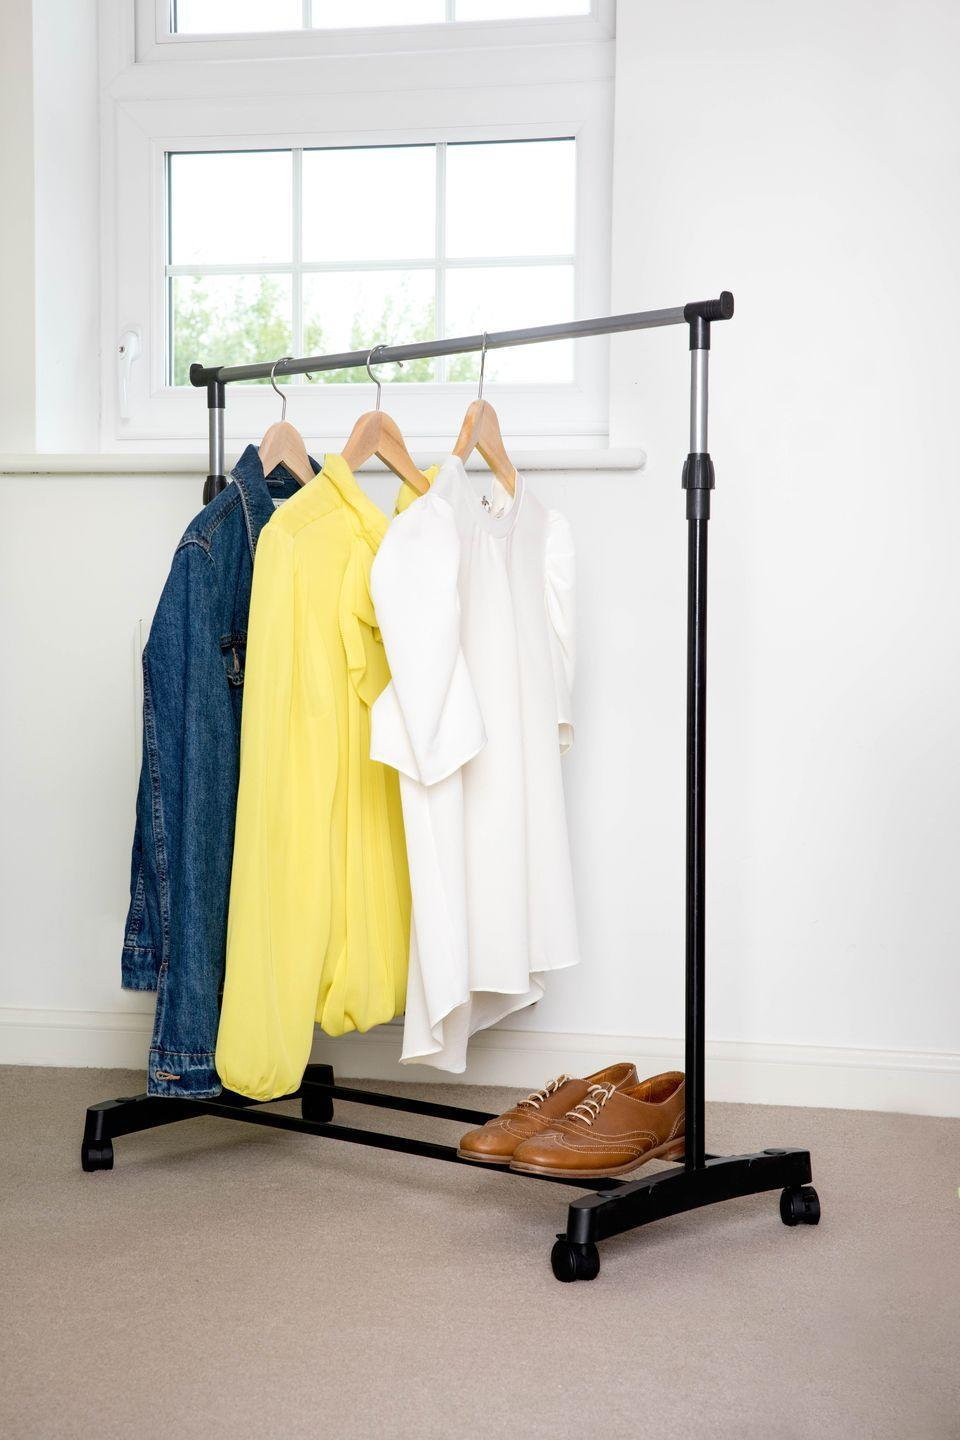 """<p>Clothes rails help to keep your space clutter-free, while also providing additional storage for coats or shoes in the hallway. At just £5, this rail from Poundland is perfect for every budget. What's not to love?</p><p><strong>READ MORE</strong>: <a href=""""https://www.housebeautiful.com/uk/lifestyle/storage/g28156340/clothes-rails/"""" rel=""""nofollow noopener"""" target=""""_blank"""" data-ylk=""""slk:8 stylish clothes rails perfect for extra storage"""" class=""""link rapid-noclick-resp"""">8 stylish clothes rails perfect for extra storage</a></p>"""